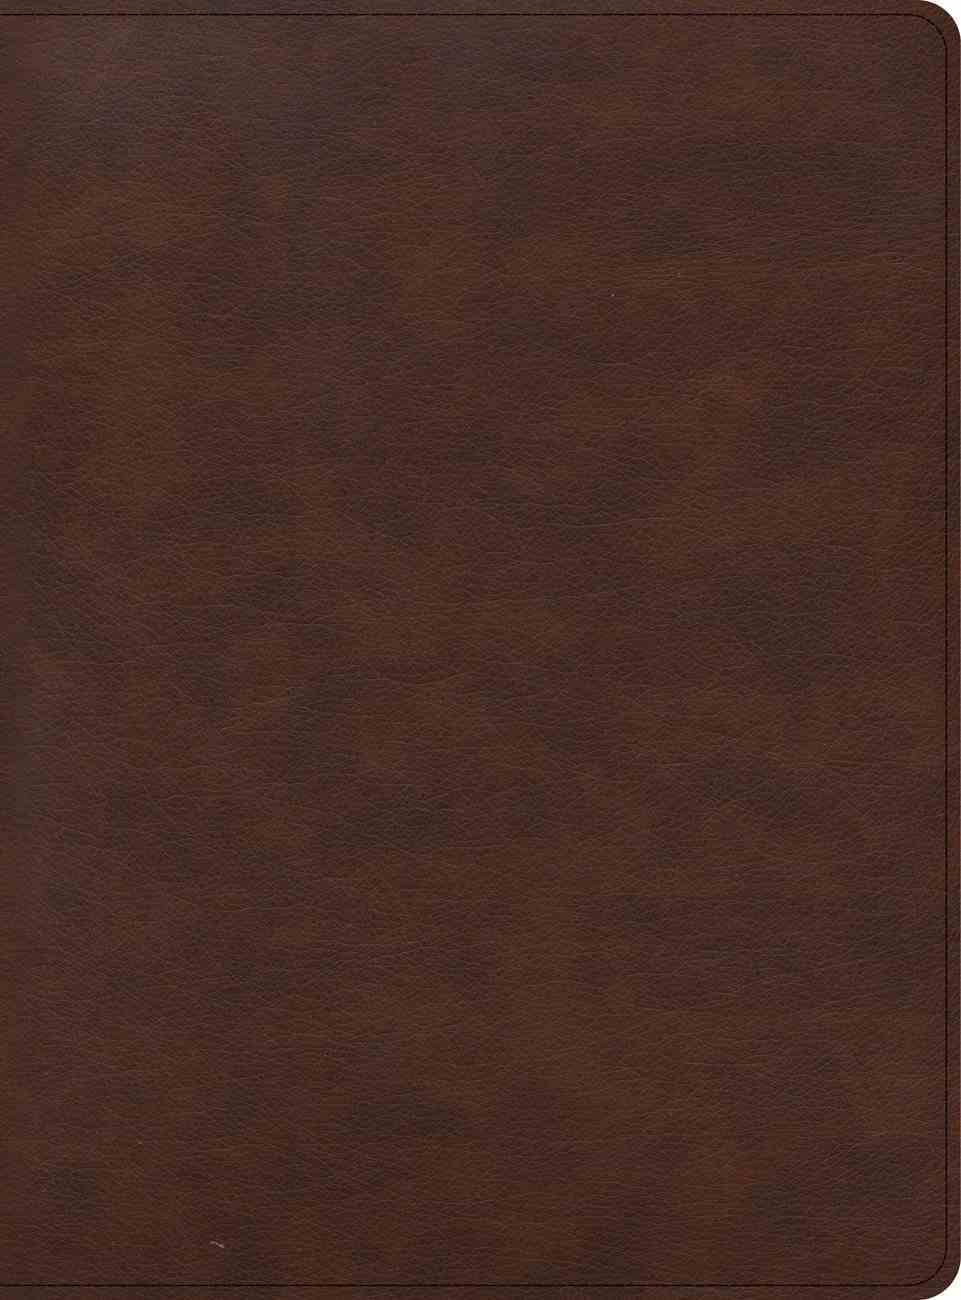 CSB Apologetics Study Bible For Students Brown (Black Letter Edition) Imitation Leather